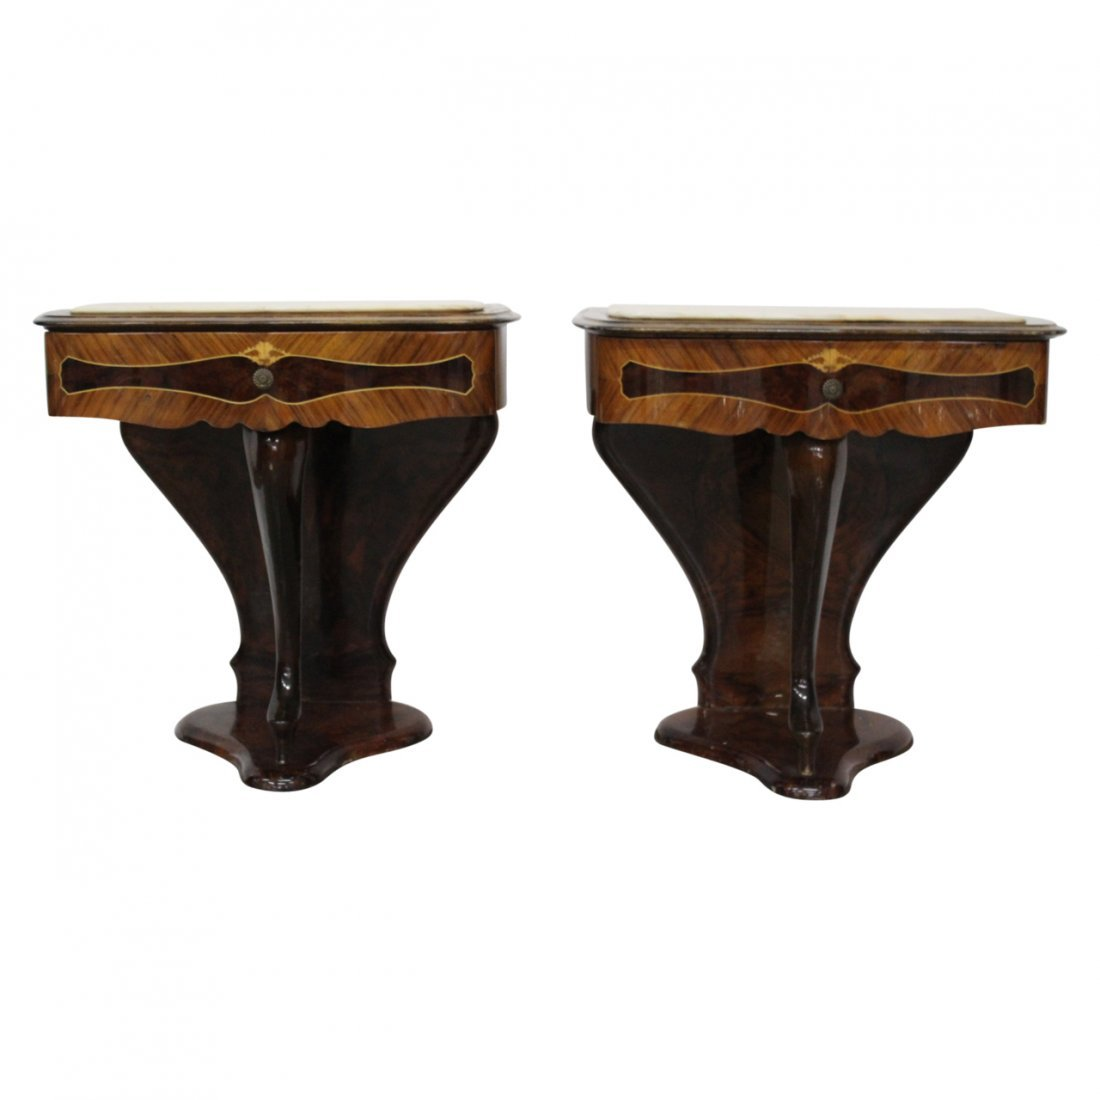 Pair of Italian Nouveau Marble Top Nightstands